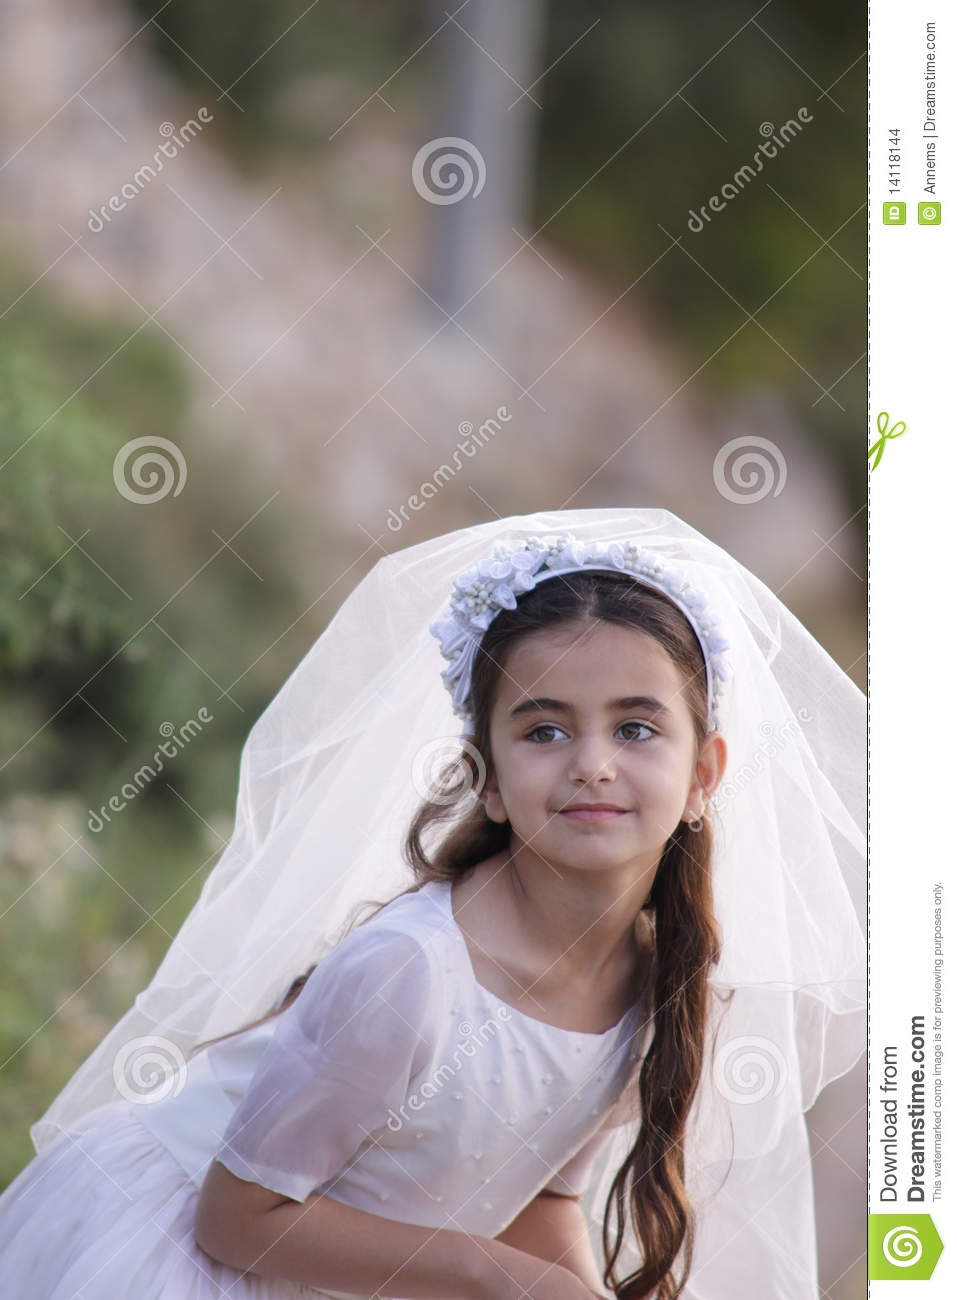 Girl First Birthday Outfit Pinterest: Girl In Her First Communion Dress And Veil Stock Images